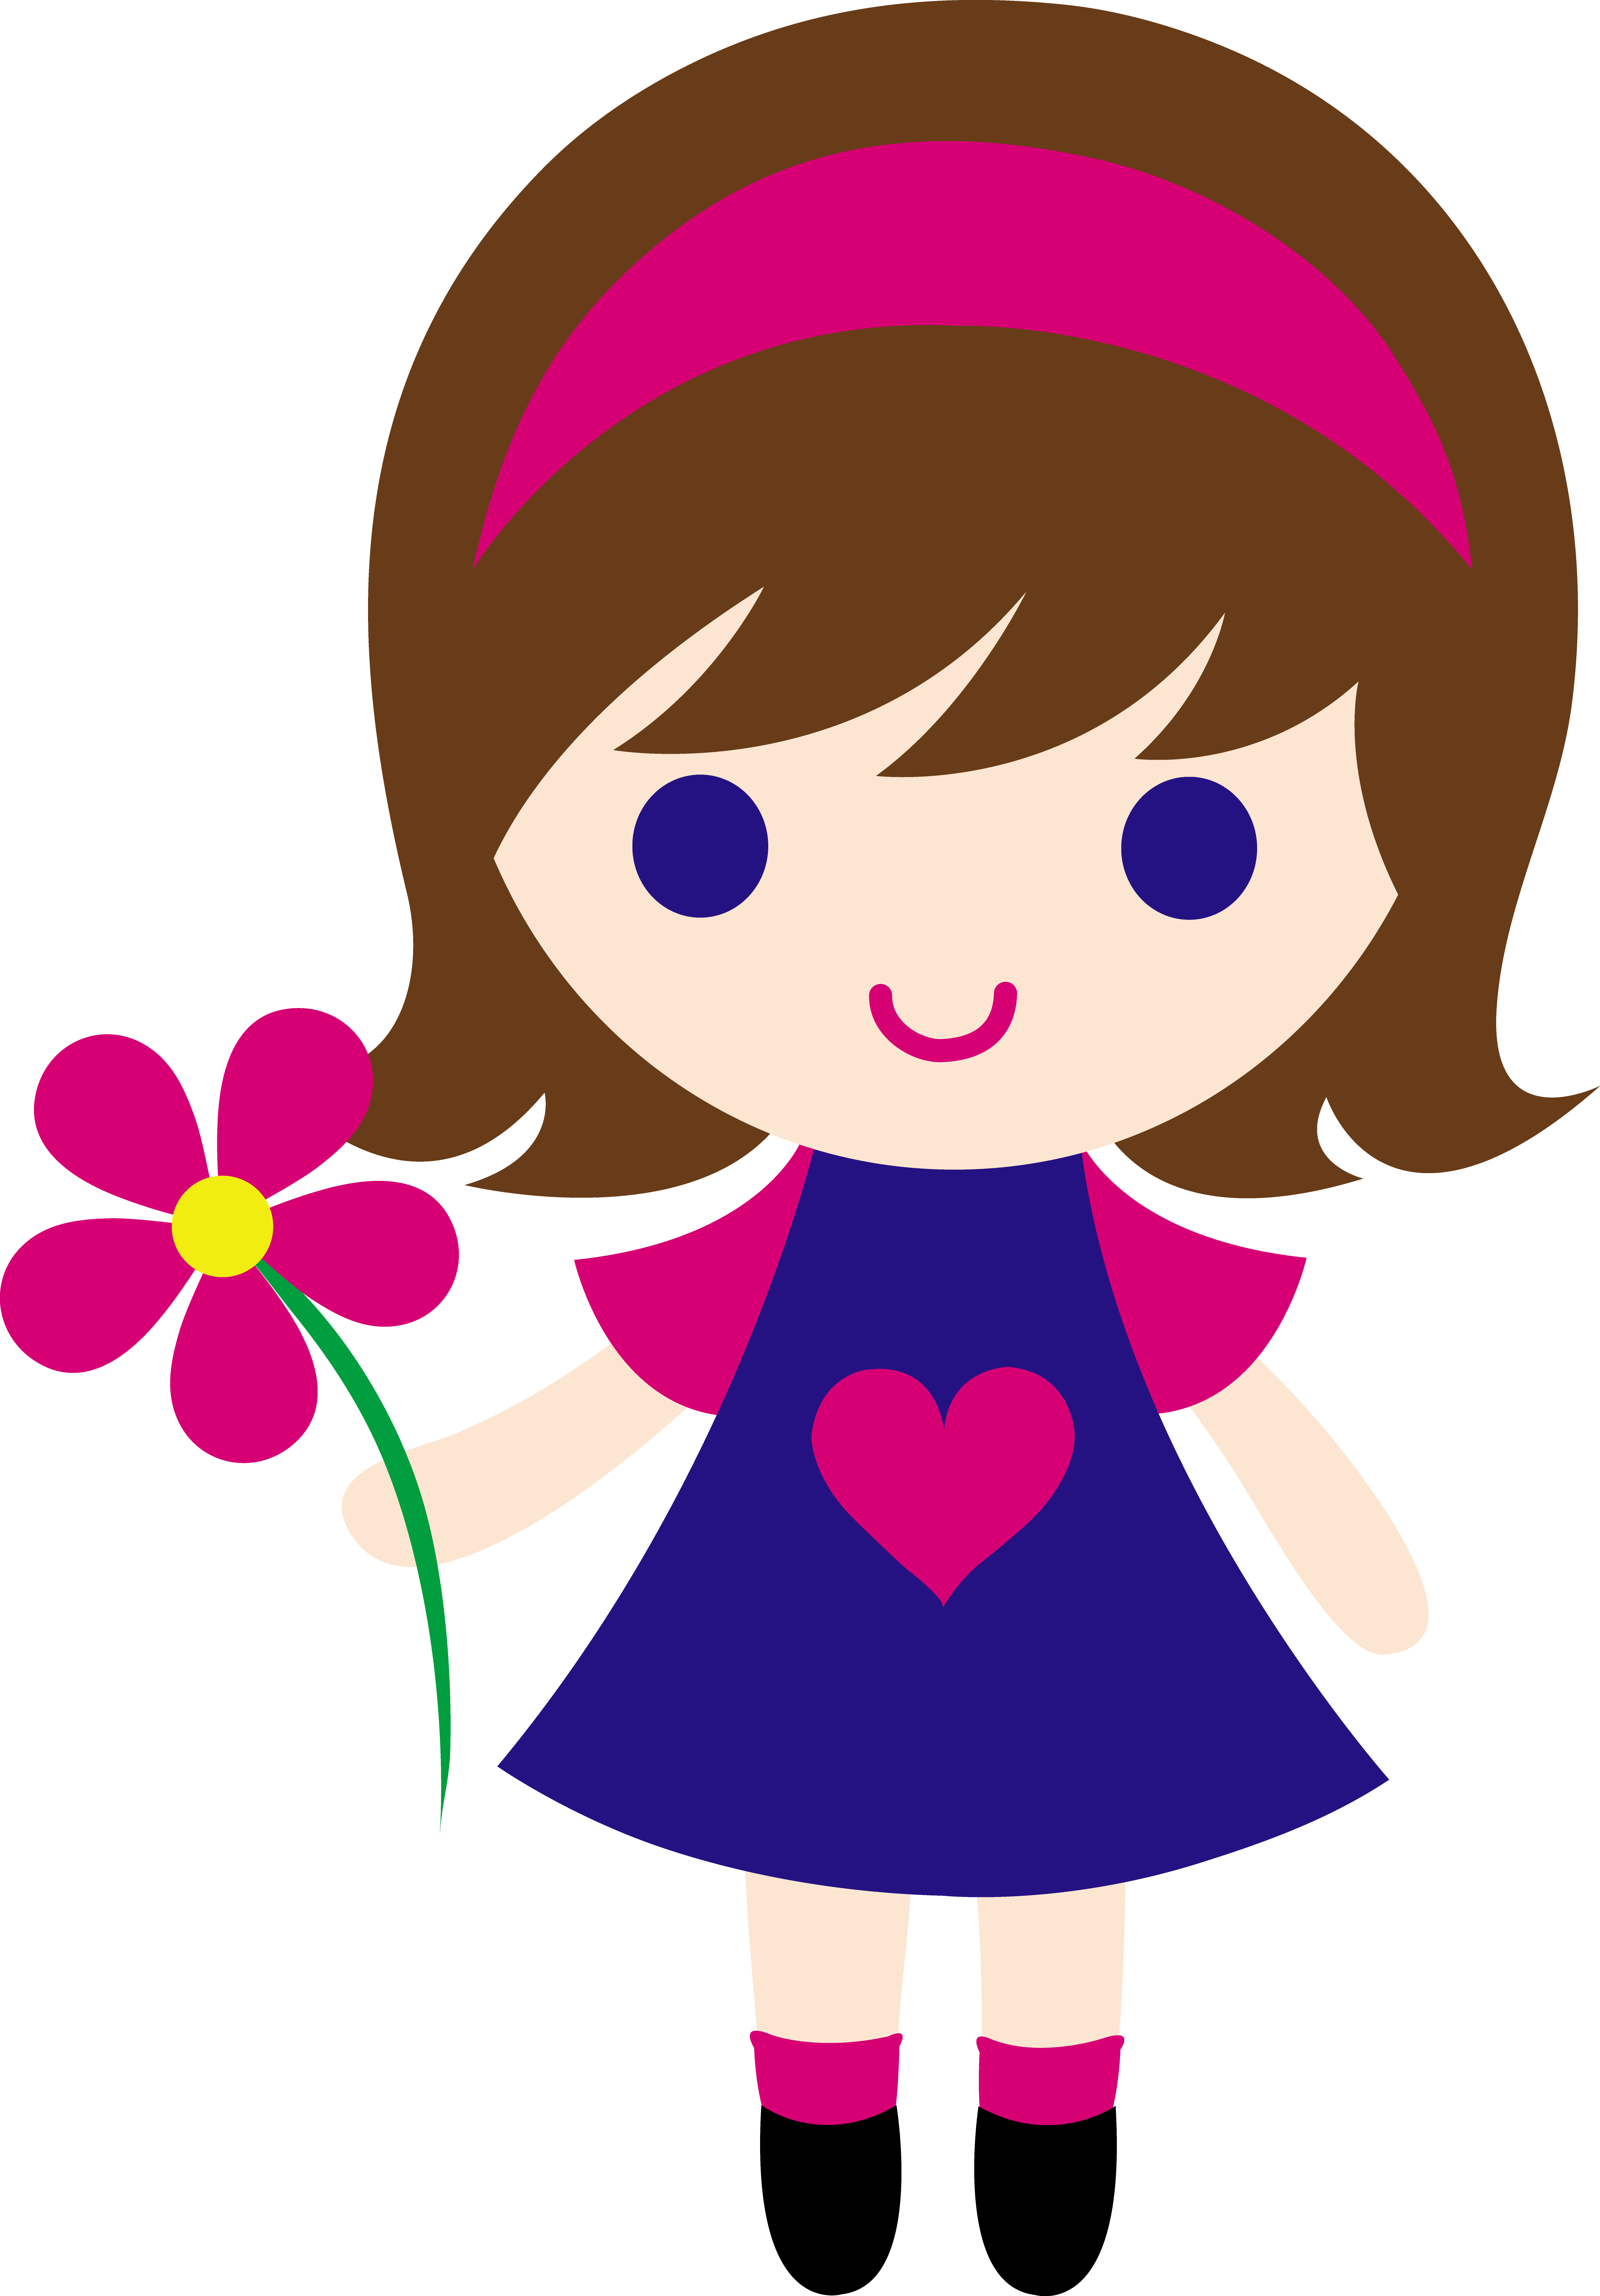 Hungry clipart little girl. My clip art of